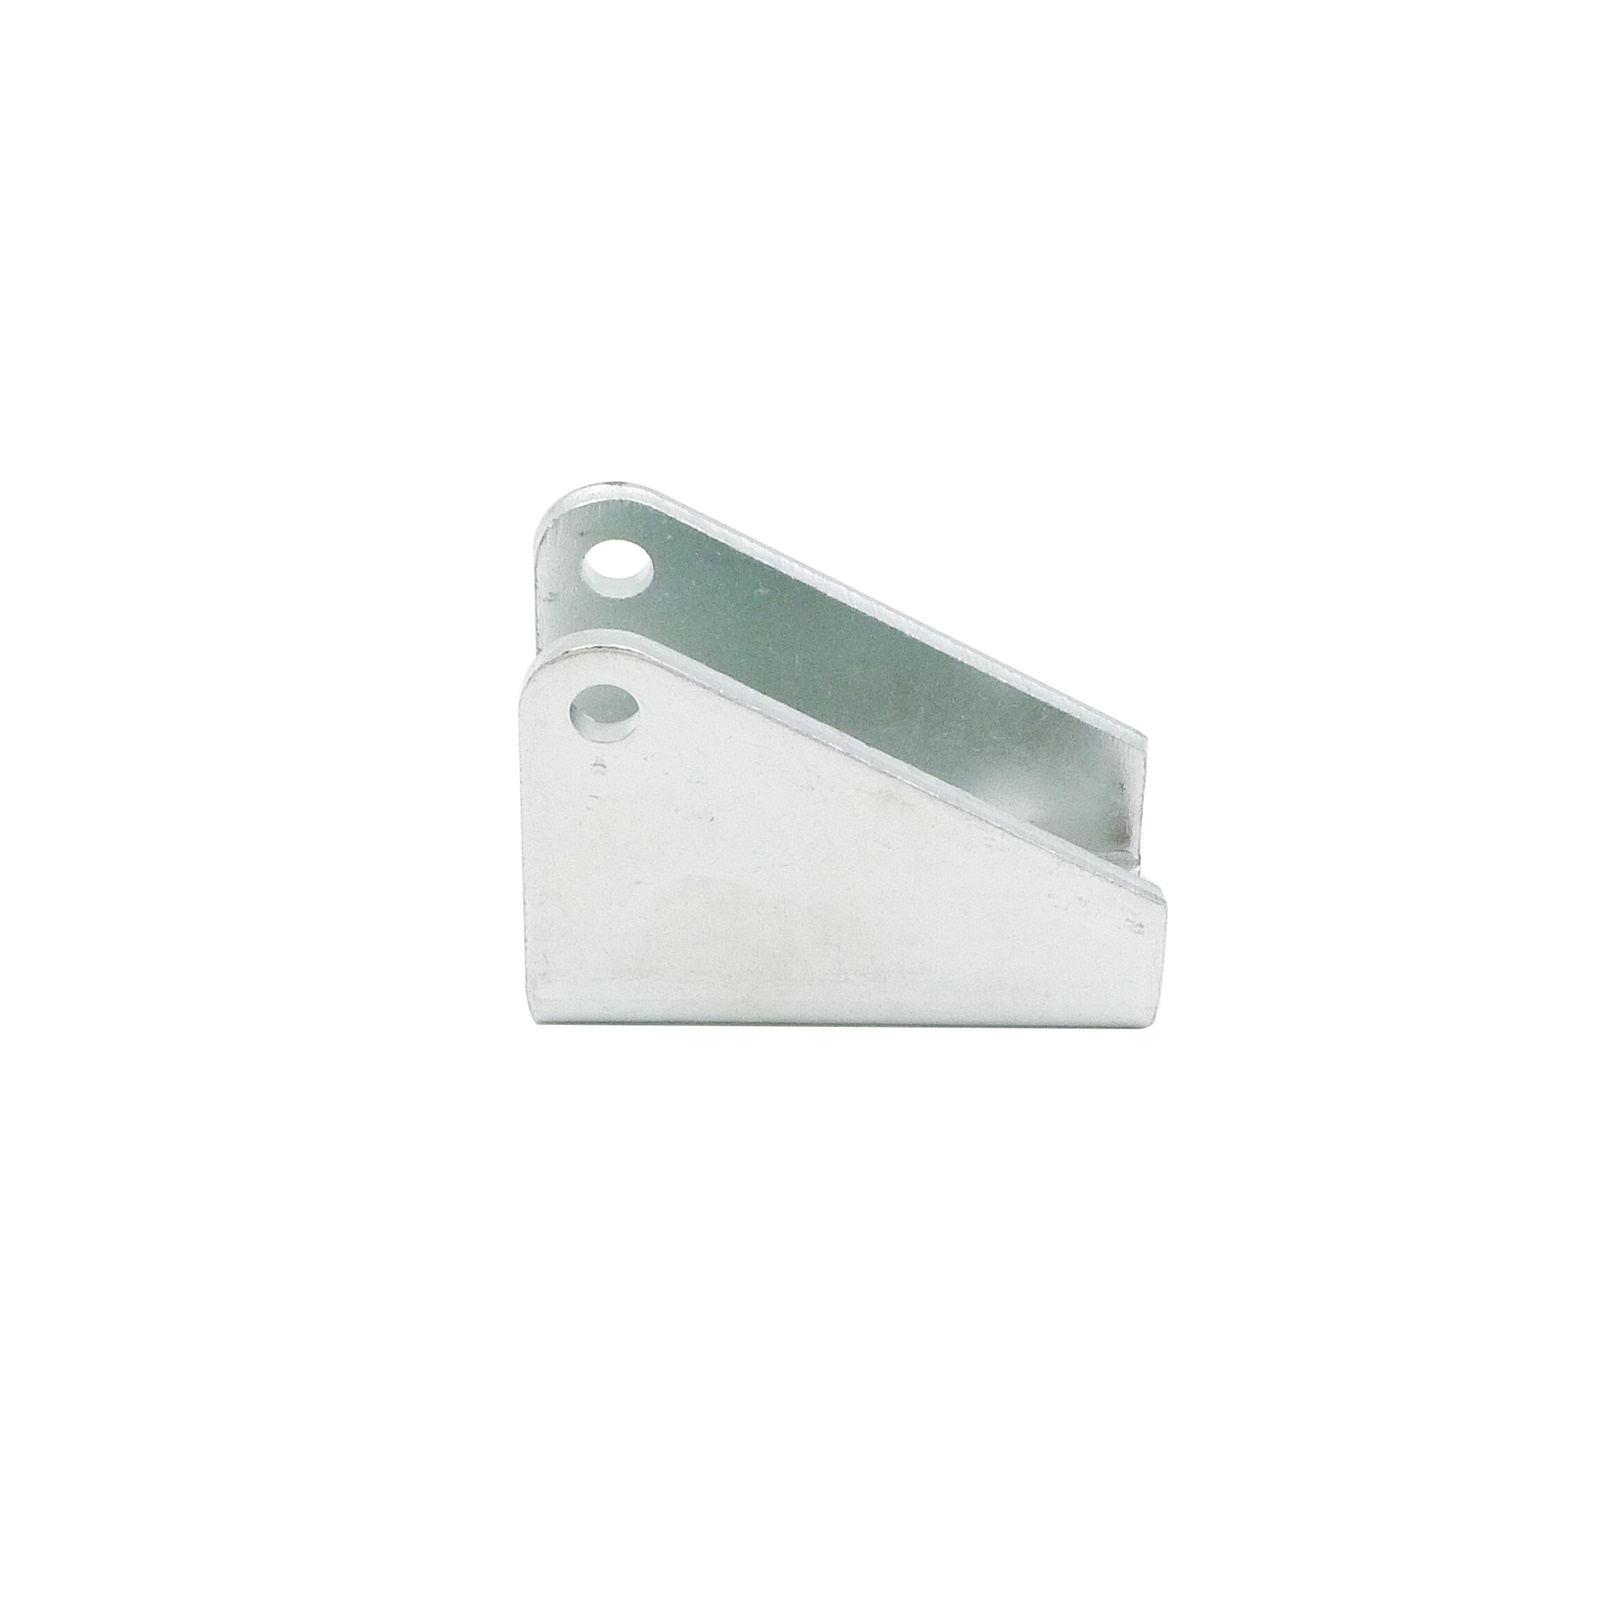 KST-BKT-07 mounting bracket for linear actuator -  (2)